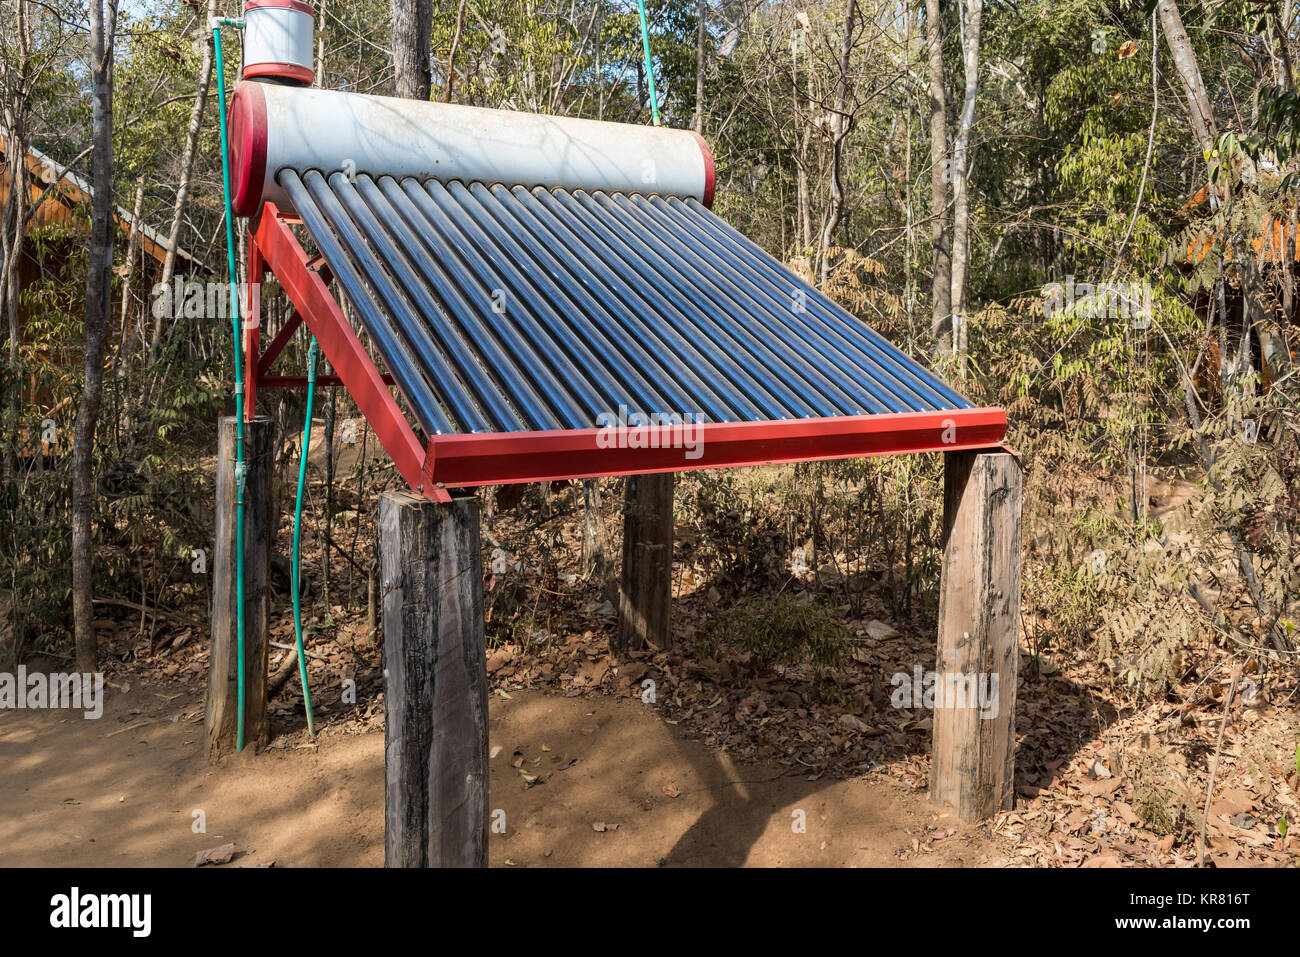 A solar powered water heater. Kirindy Forest Camp. Madagascar, Africa. - Stock Image